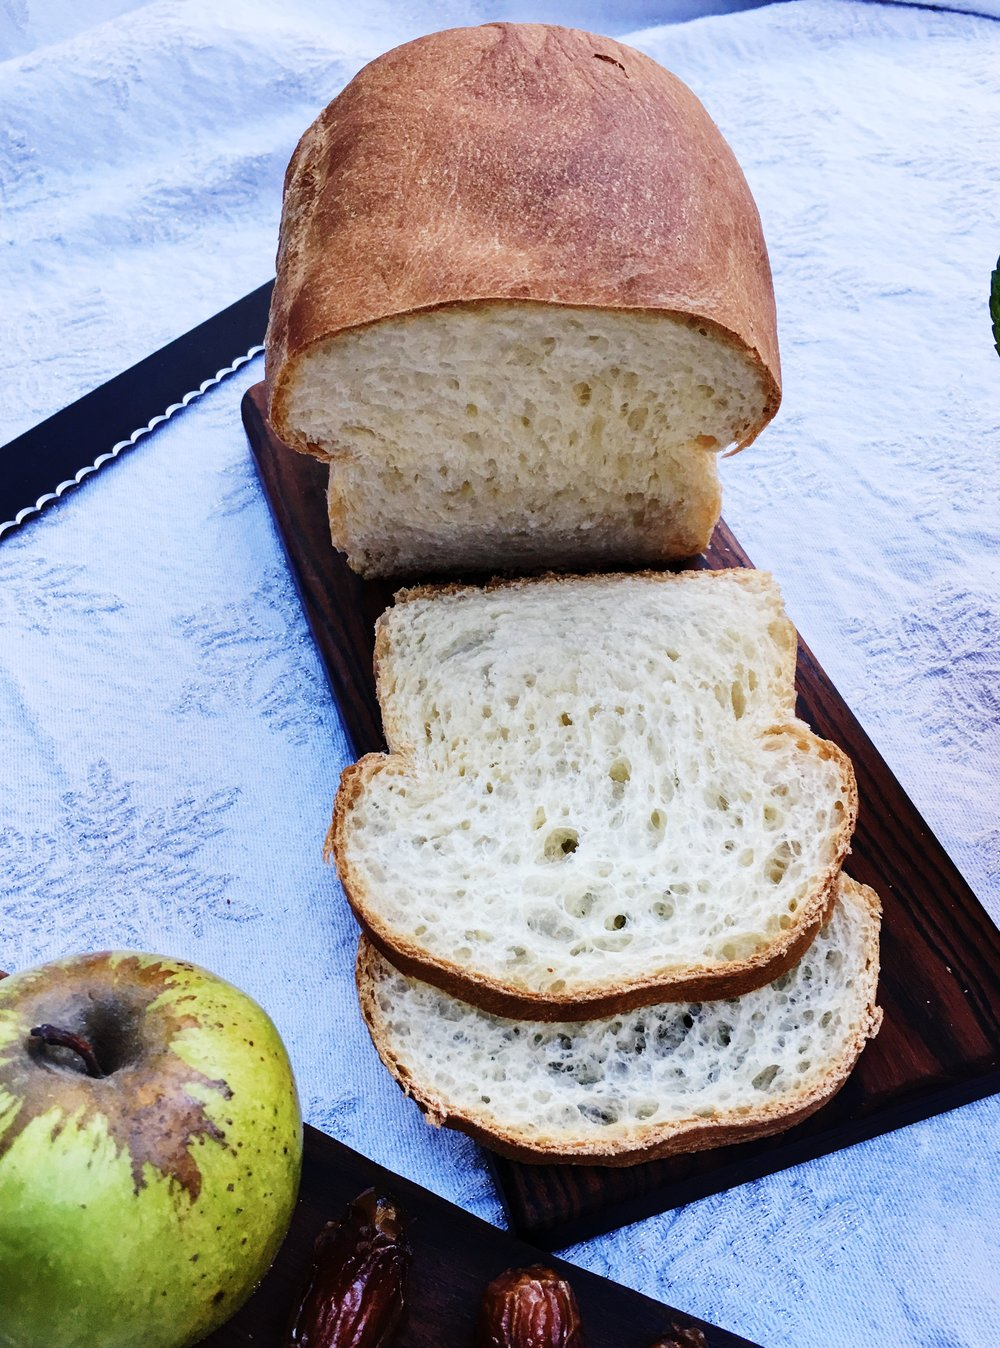 Freshly baked bread, or a best loaf from your favorite baker, is a beautiful way to sop up the remains of your chicken pie. Bread and pie crust in one meal? Oh, yes.